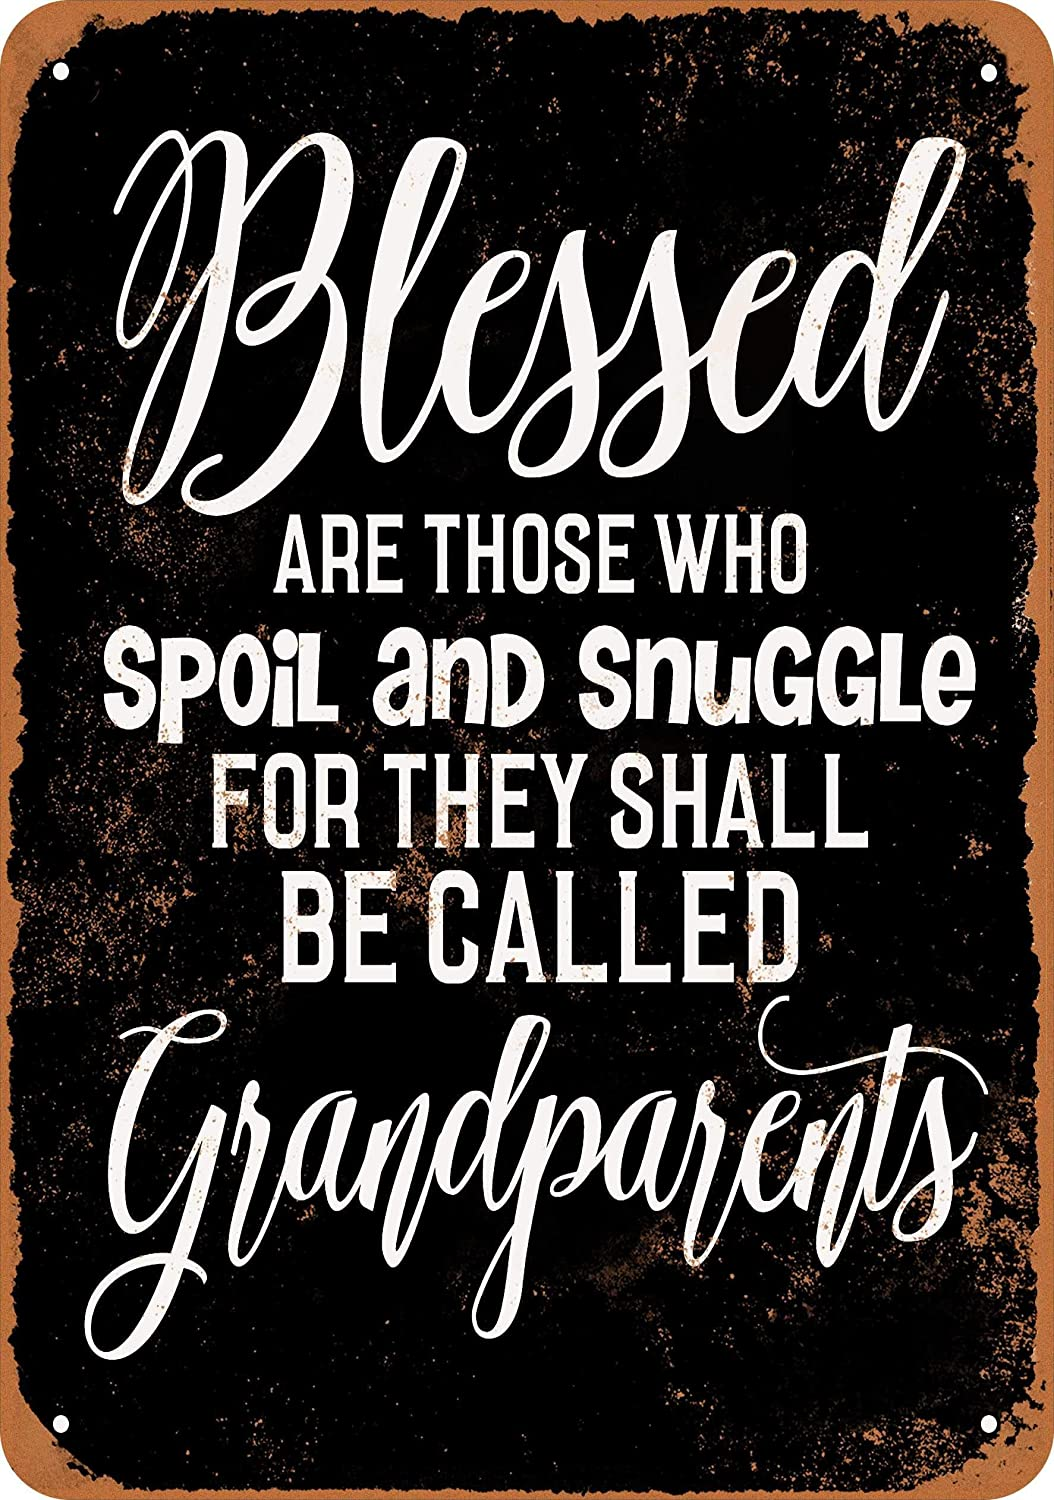 Nxsbns Blessed Grandparents (Black Background) Metal Tin Sign 12 X 8 Inches Vintage Wall Decor